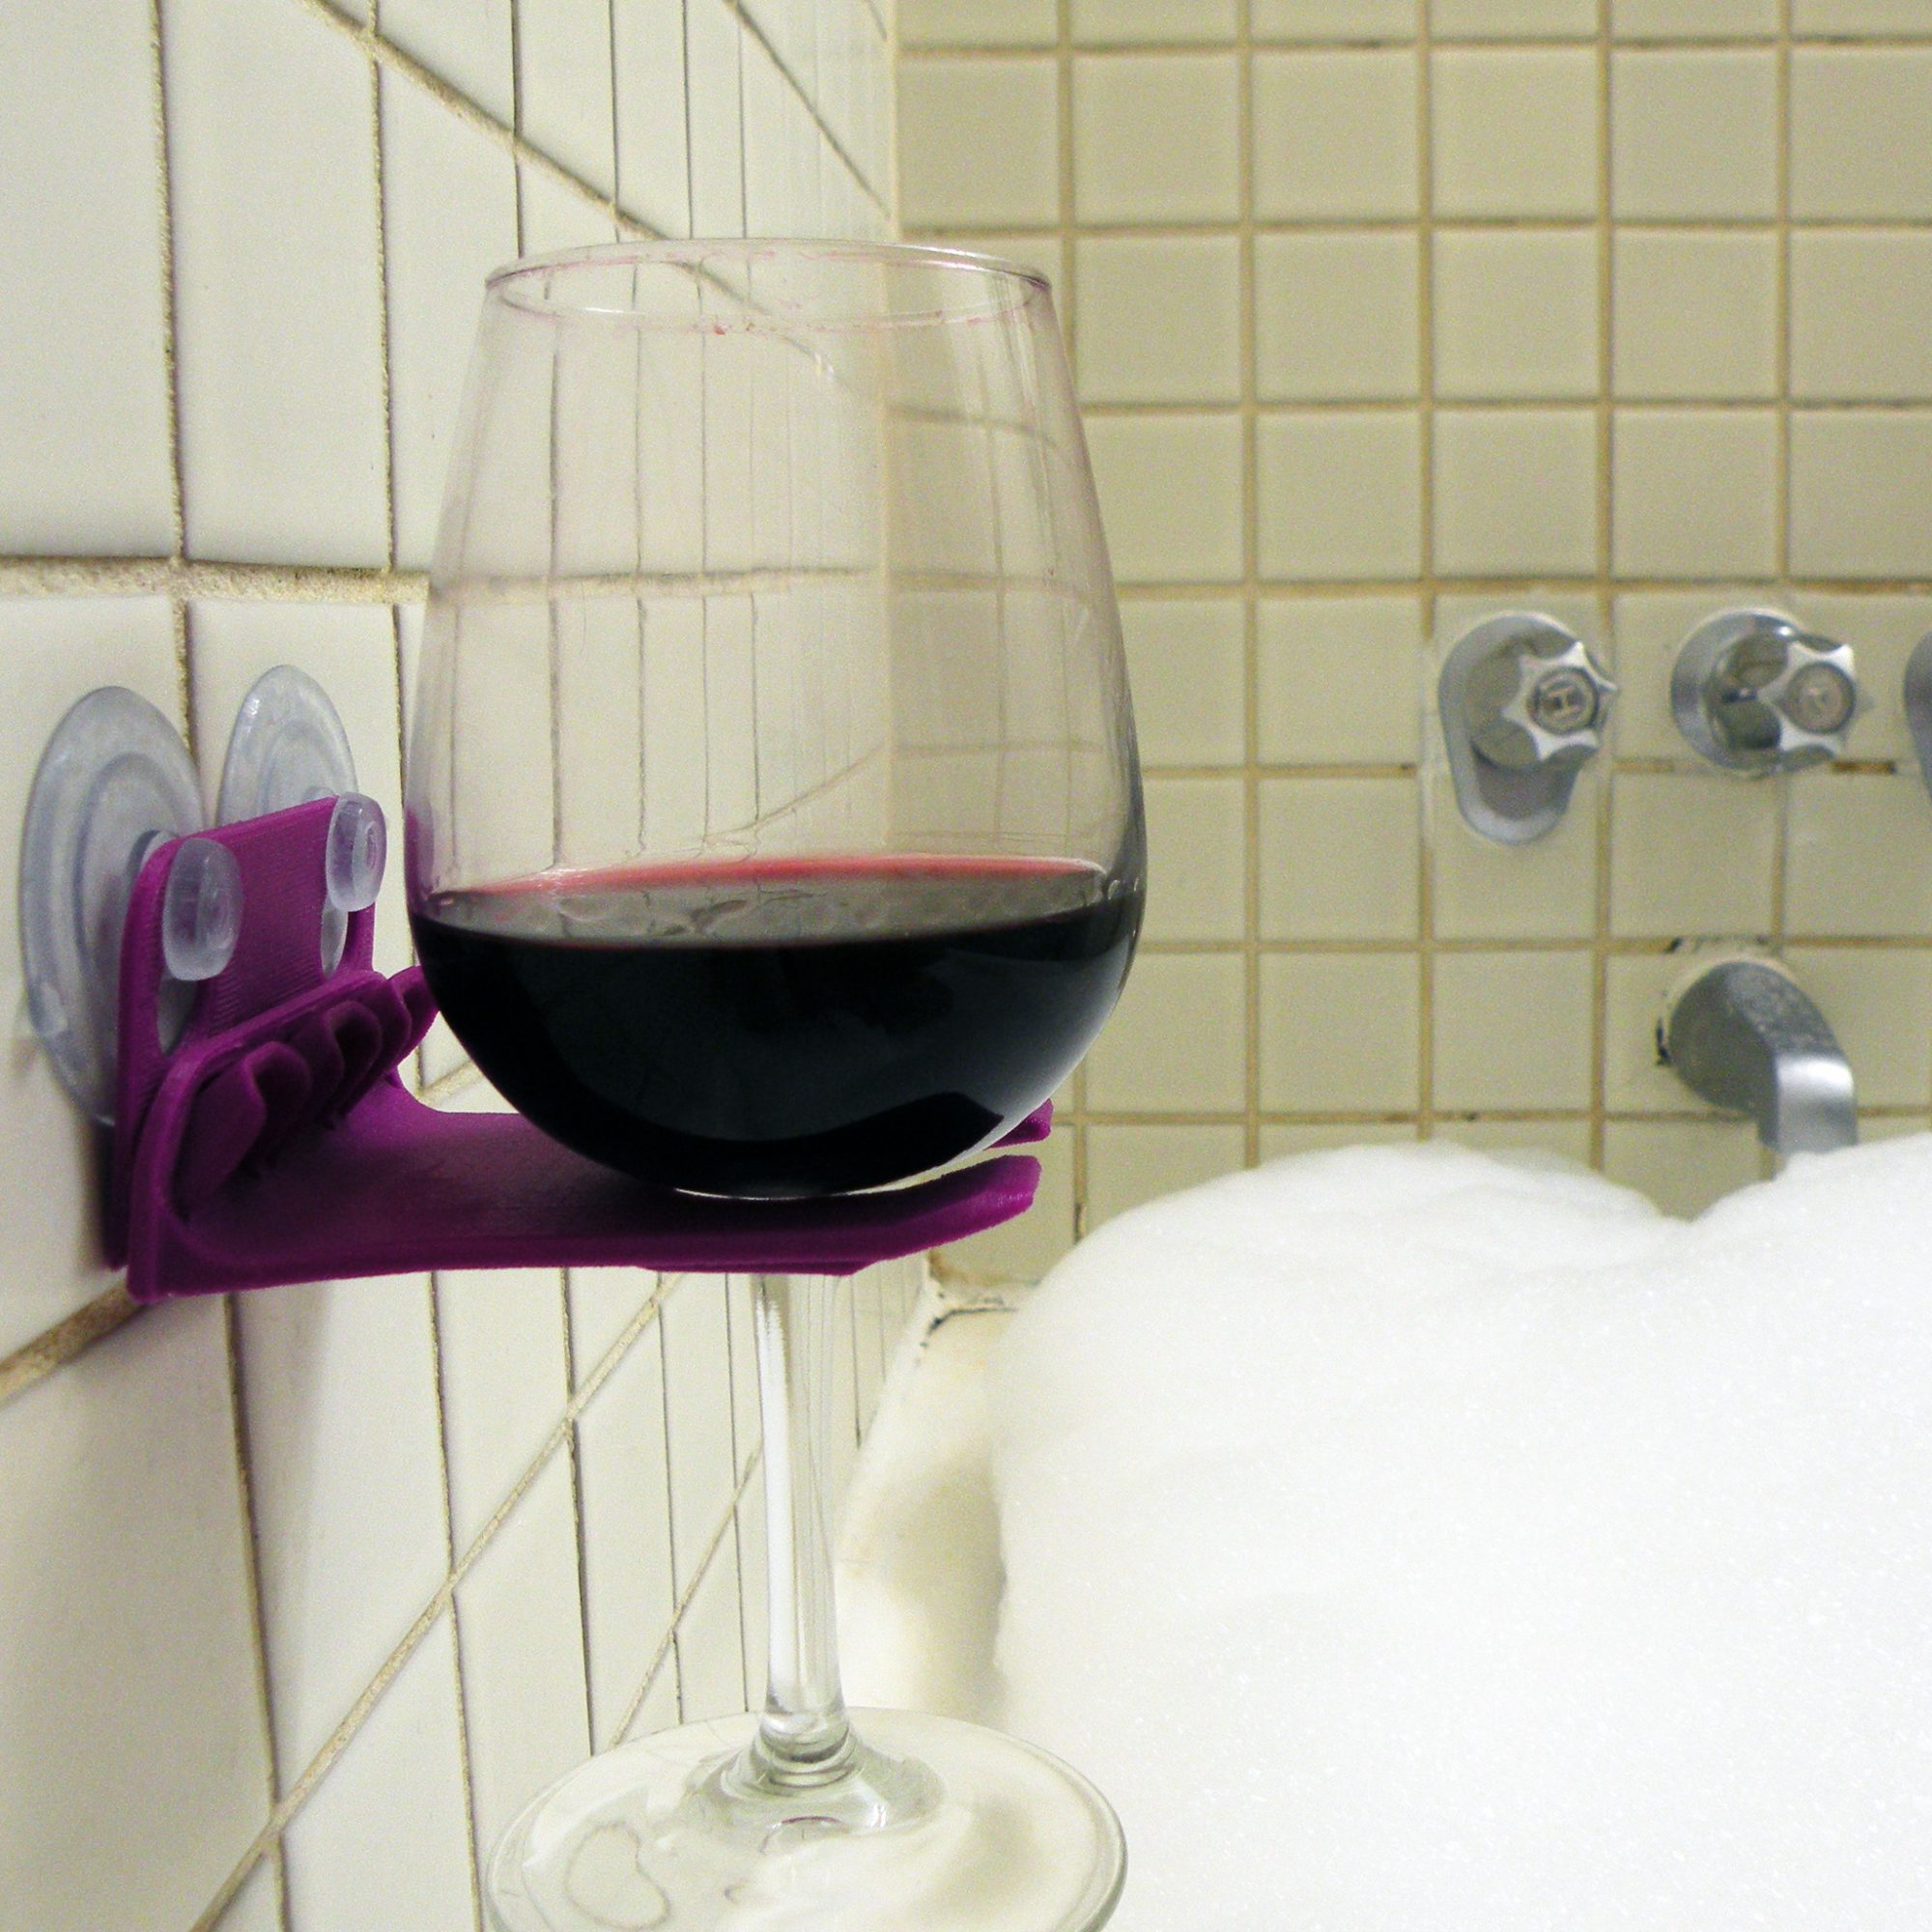 FWX 6 QUESTIONS WITH THE INVENTOR OF THE SHOWER WINE GLASS HOLDER